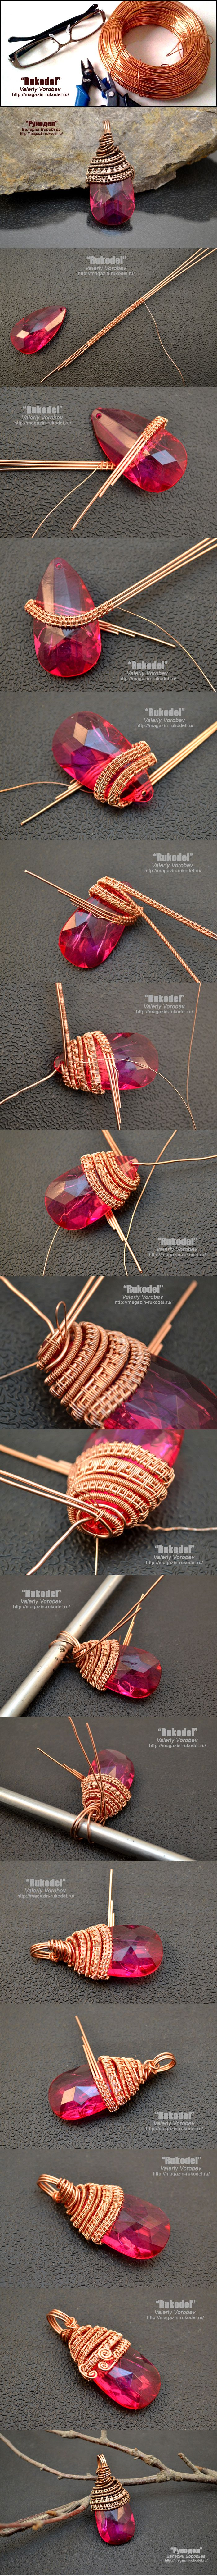 Pendant wire. Photography master class. | Crafts